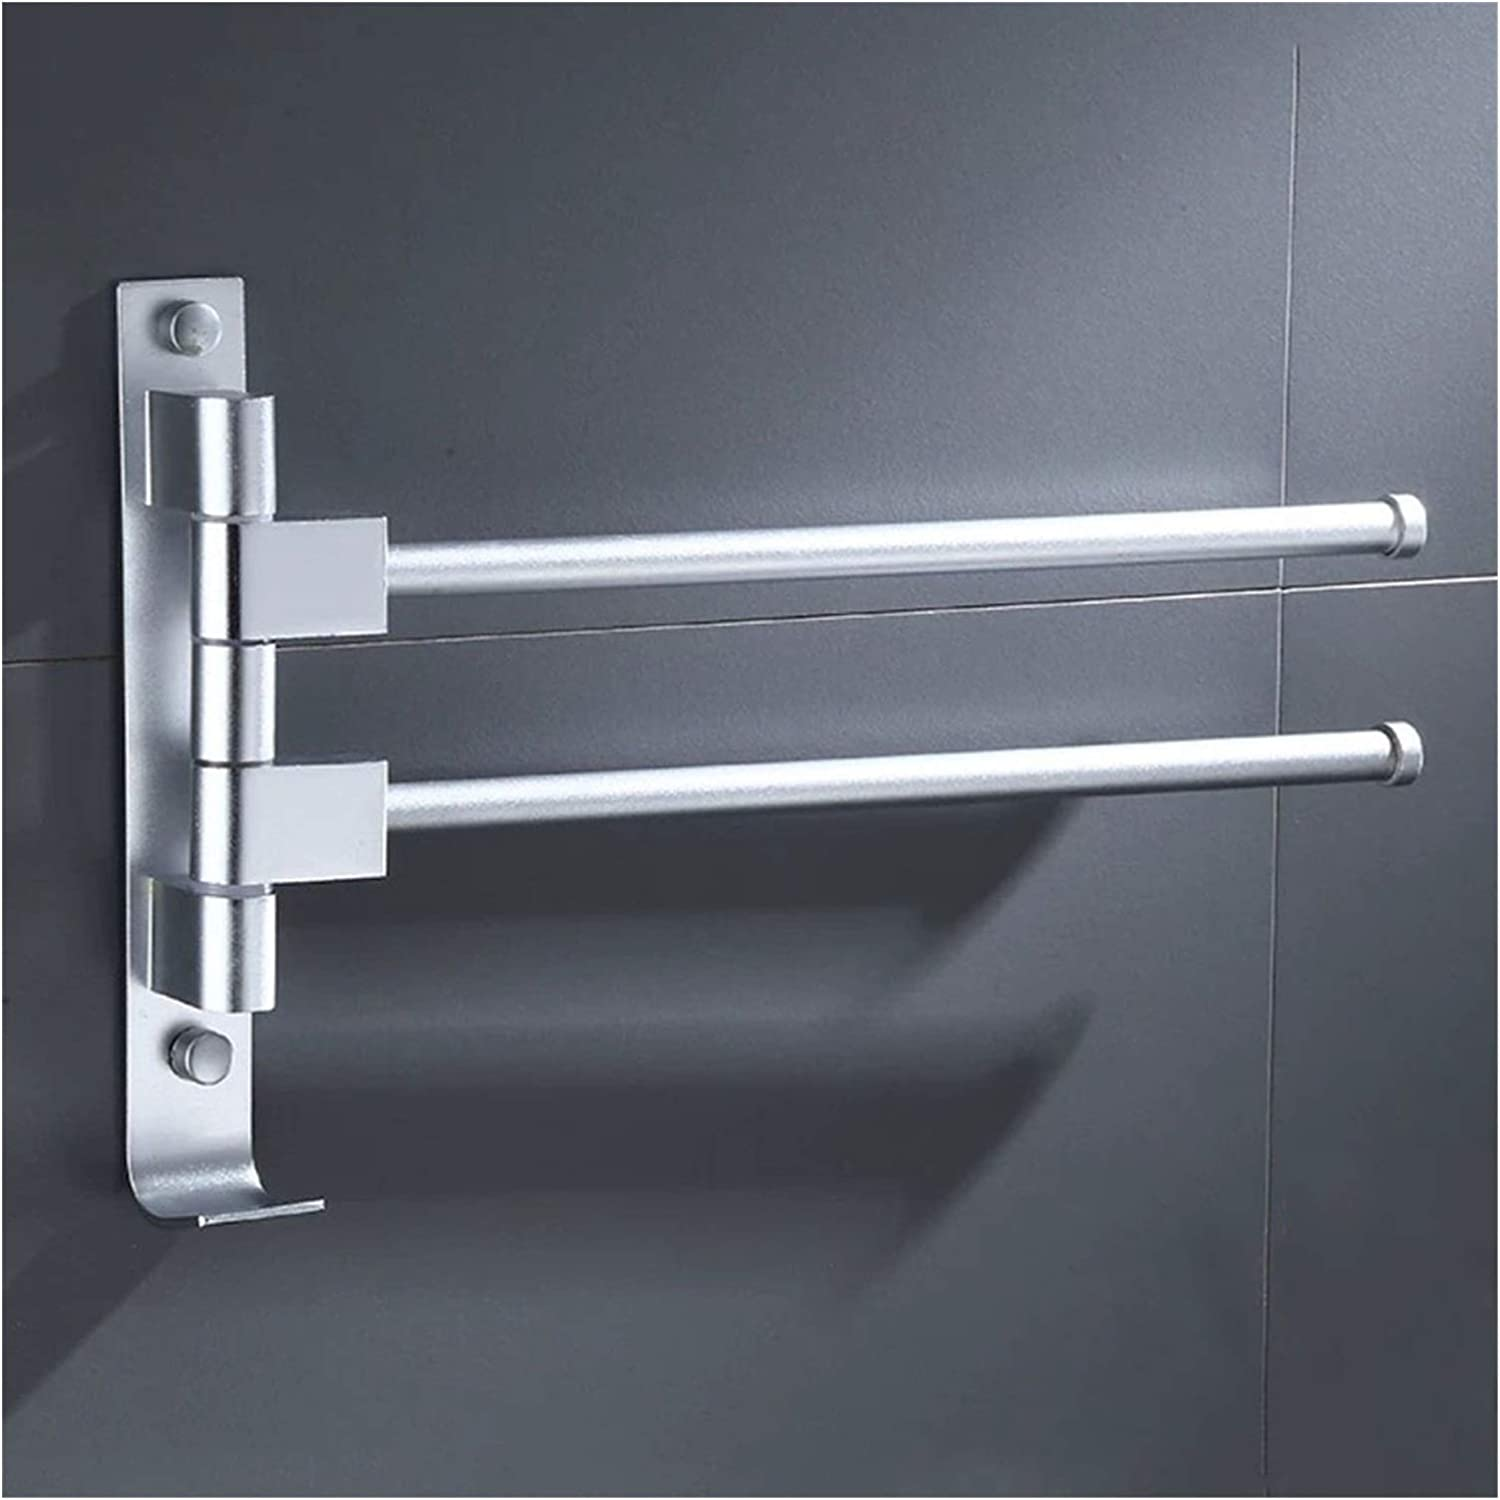 LiKin Towel Rack Swivel Bar Wall Max 75% OFF 304 Special price for a limited time SUS 5-Bar Mounted Tow